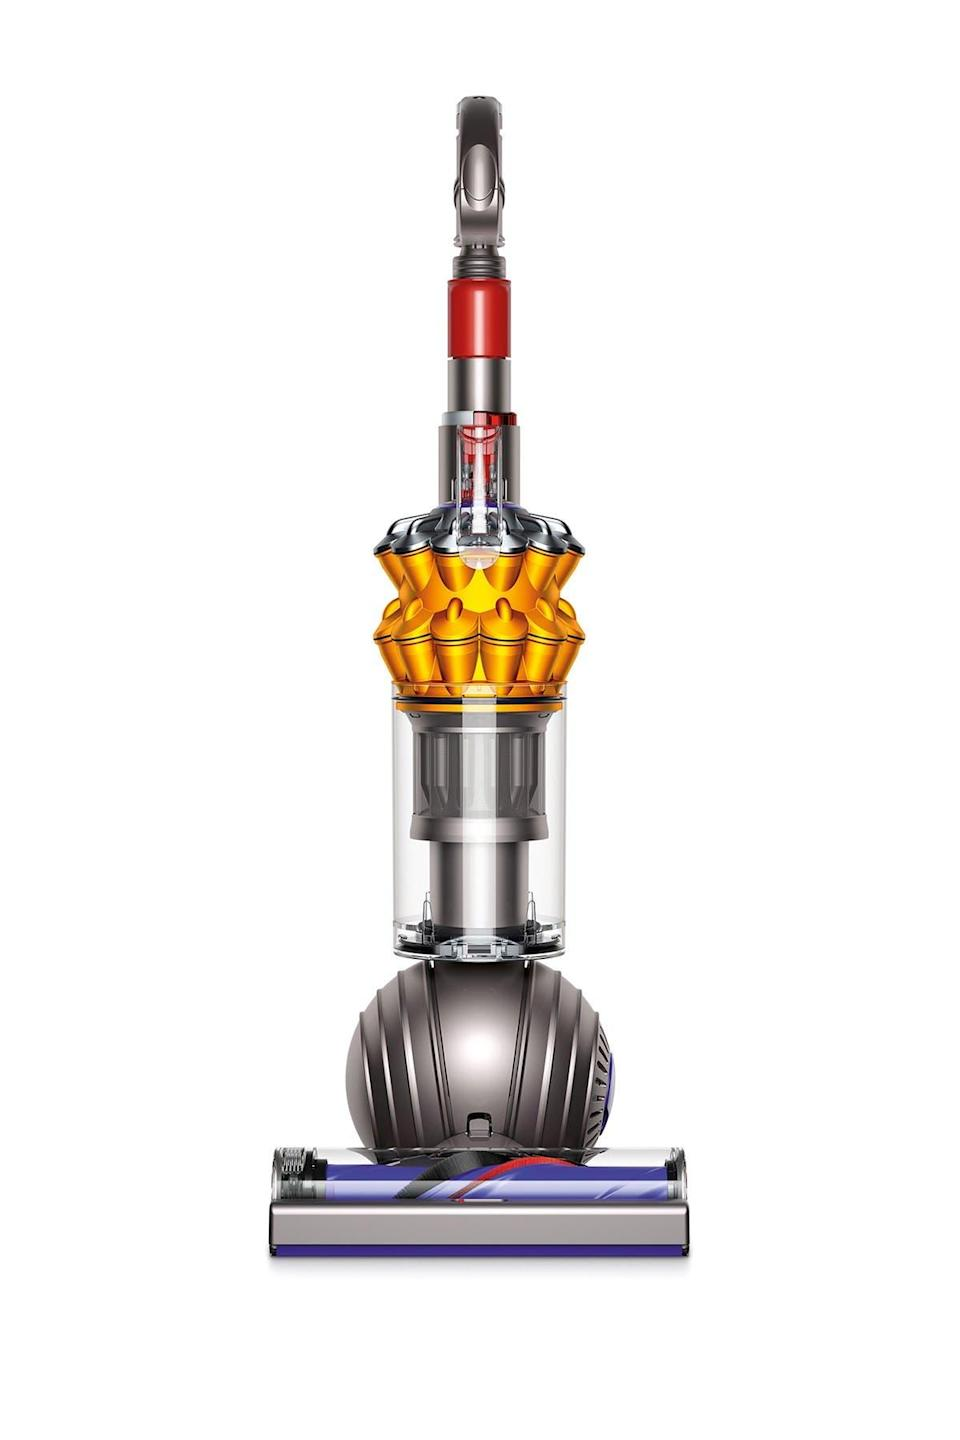 "<br><br><strong>Dyson</strong> UP15 Small Ball Multi Floor Upright Vacuum - Refurbishe, $, available at <a href=""https://go.skimresources.com/?id=30283X879131&url=https%3A%2F%2Fwww.nordstromrack.com%2Fs%2Fdyson-iron-yellow-up-15-small-ball-multi-floor-upright-vacuum-refurbished%2Fn3229585"" rel=""nofollow noopener"" target=""_blank"" data-ylk=""slk:Nordstrom Rack"" class=""link rapid-noclick-resp"">Nordstrom Rack</a>"